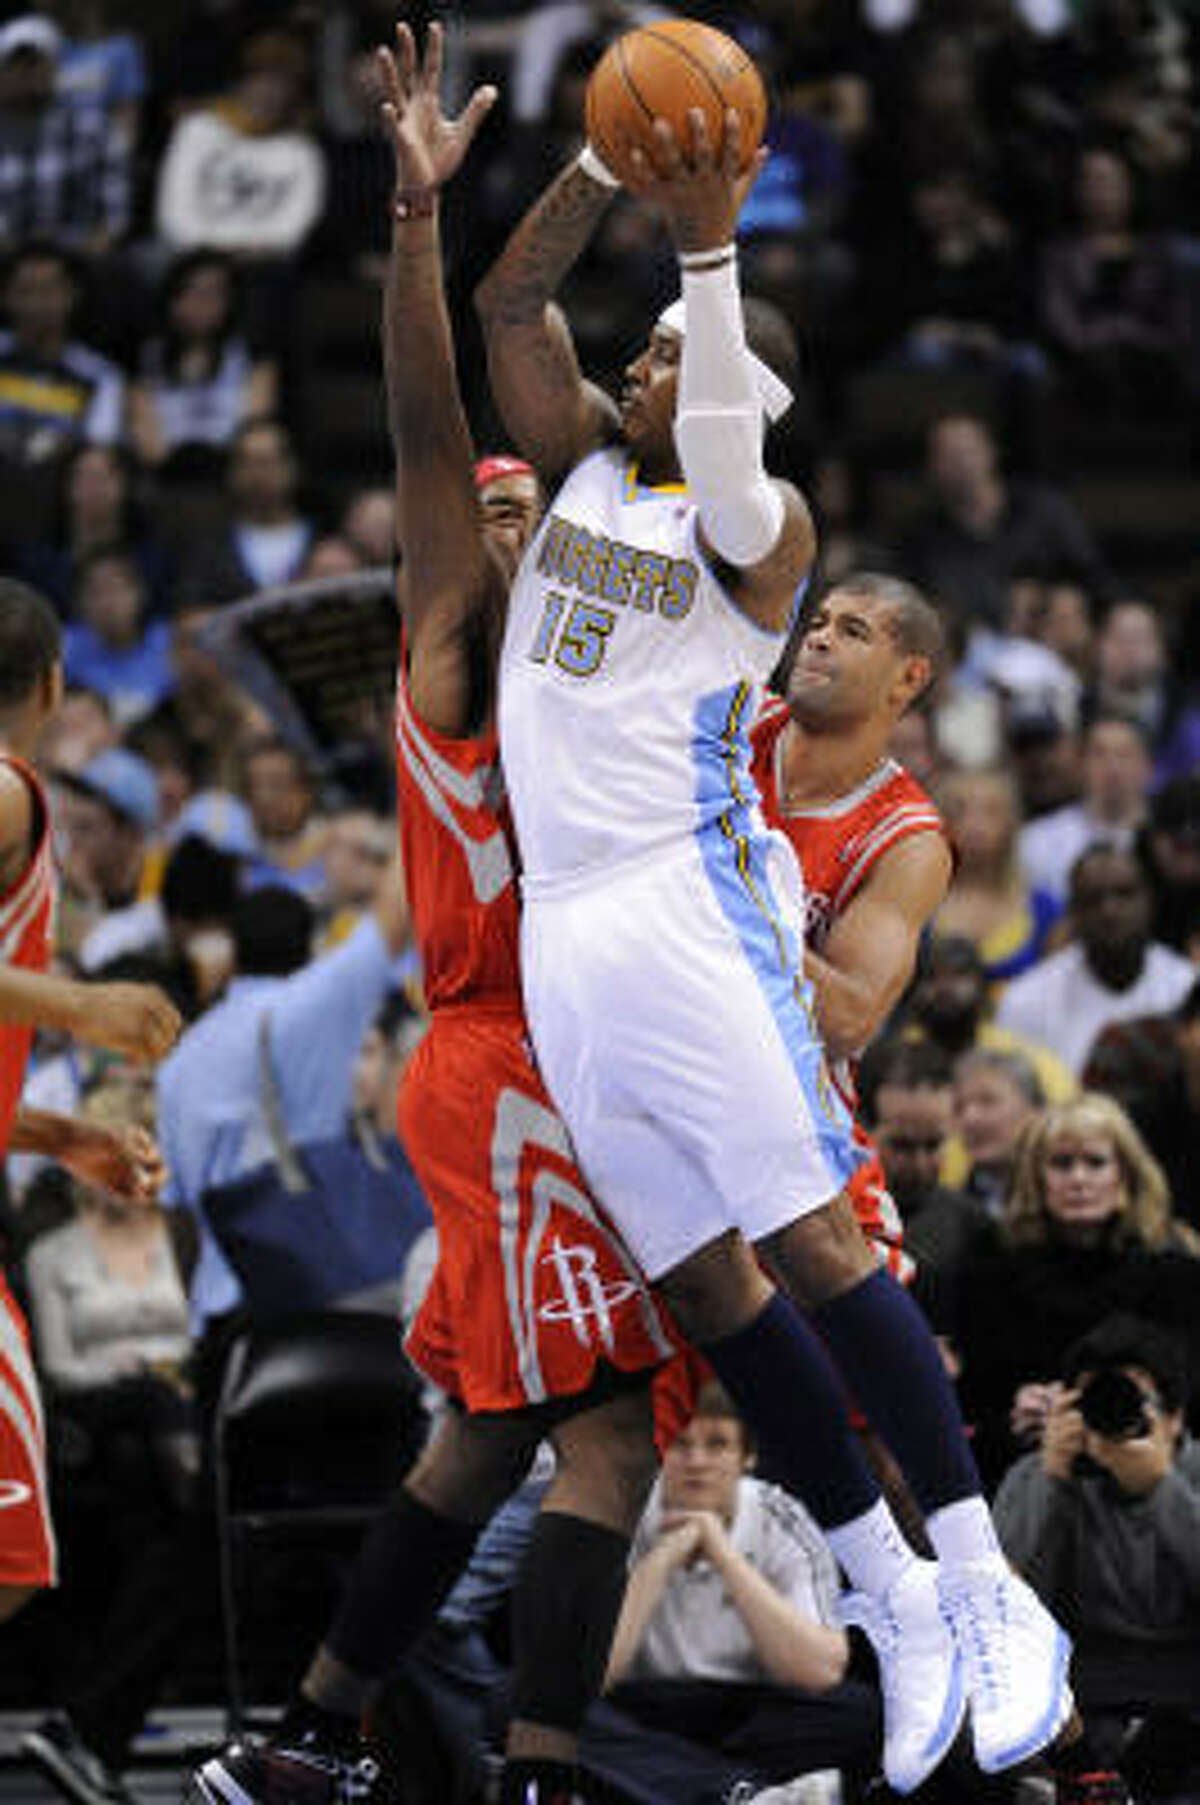 Nuggets forward Carmelo Anthony (15) goes up for a shot against Rockets forward Jordan Hill, left, and Shane Battier, right.